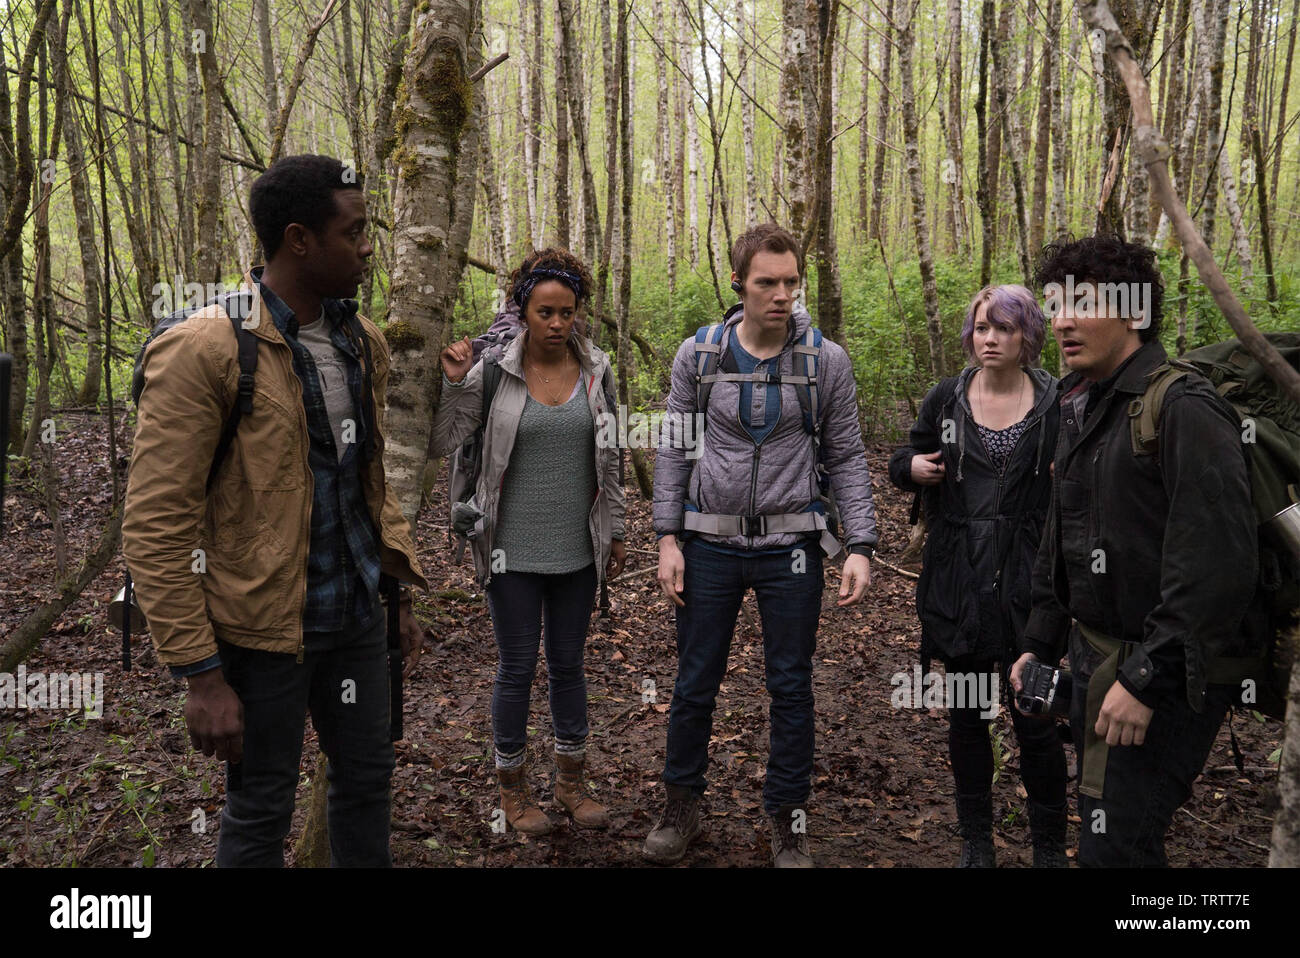 VALORIE CURRY , JAMES ALLEN MCCUNE , WES ROBINSON , BRANDON SCOTT and CORBIN REID in BLAIR WITCH (2016). Copyright: Editorial use only. No merchandising or book covers. This is a publicly distributed handout. Access rights only, no license of copyright provided. Only to be reproduced in conjunction with promotion of this film. Credit: LIONSGATE/ROOM 101/SNOOT ENT/VERTIGO ENT. / HELCERMANAS-BENGE, CHRIS / Album - Stock Image